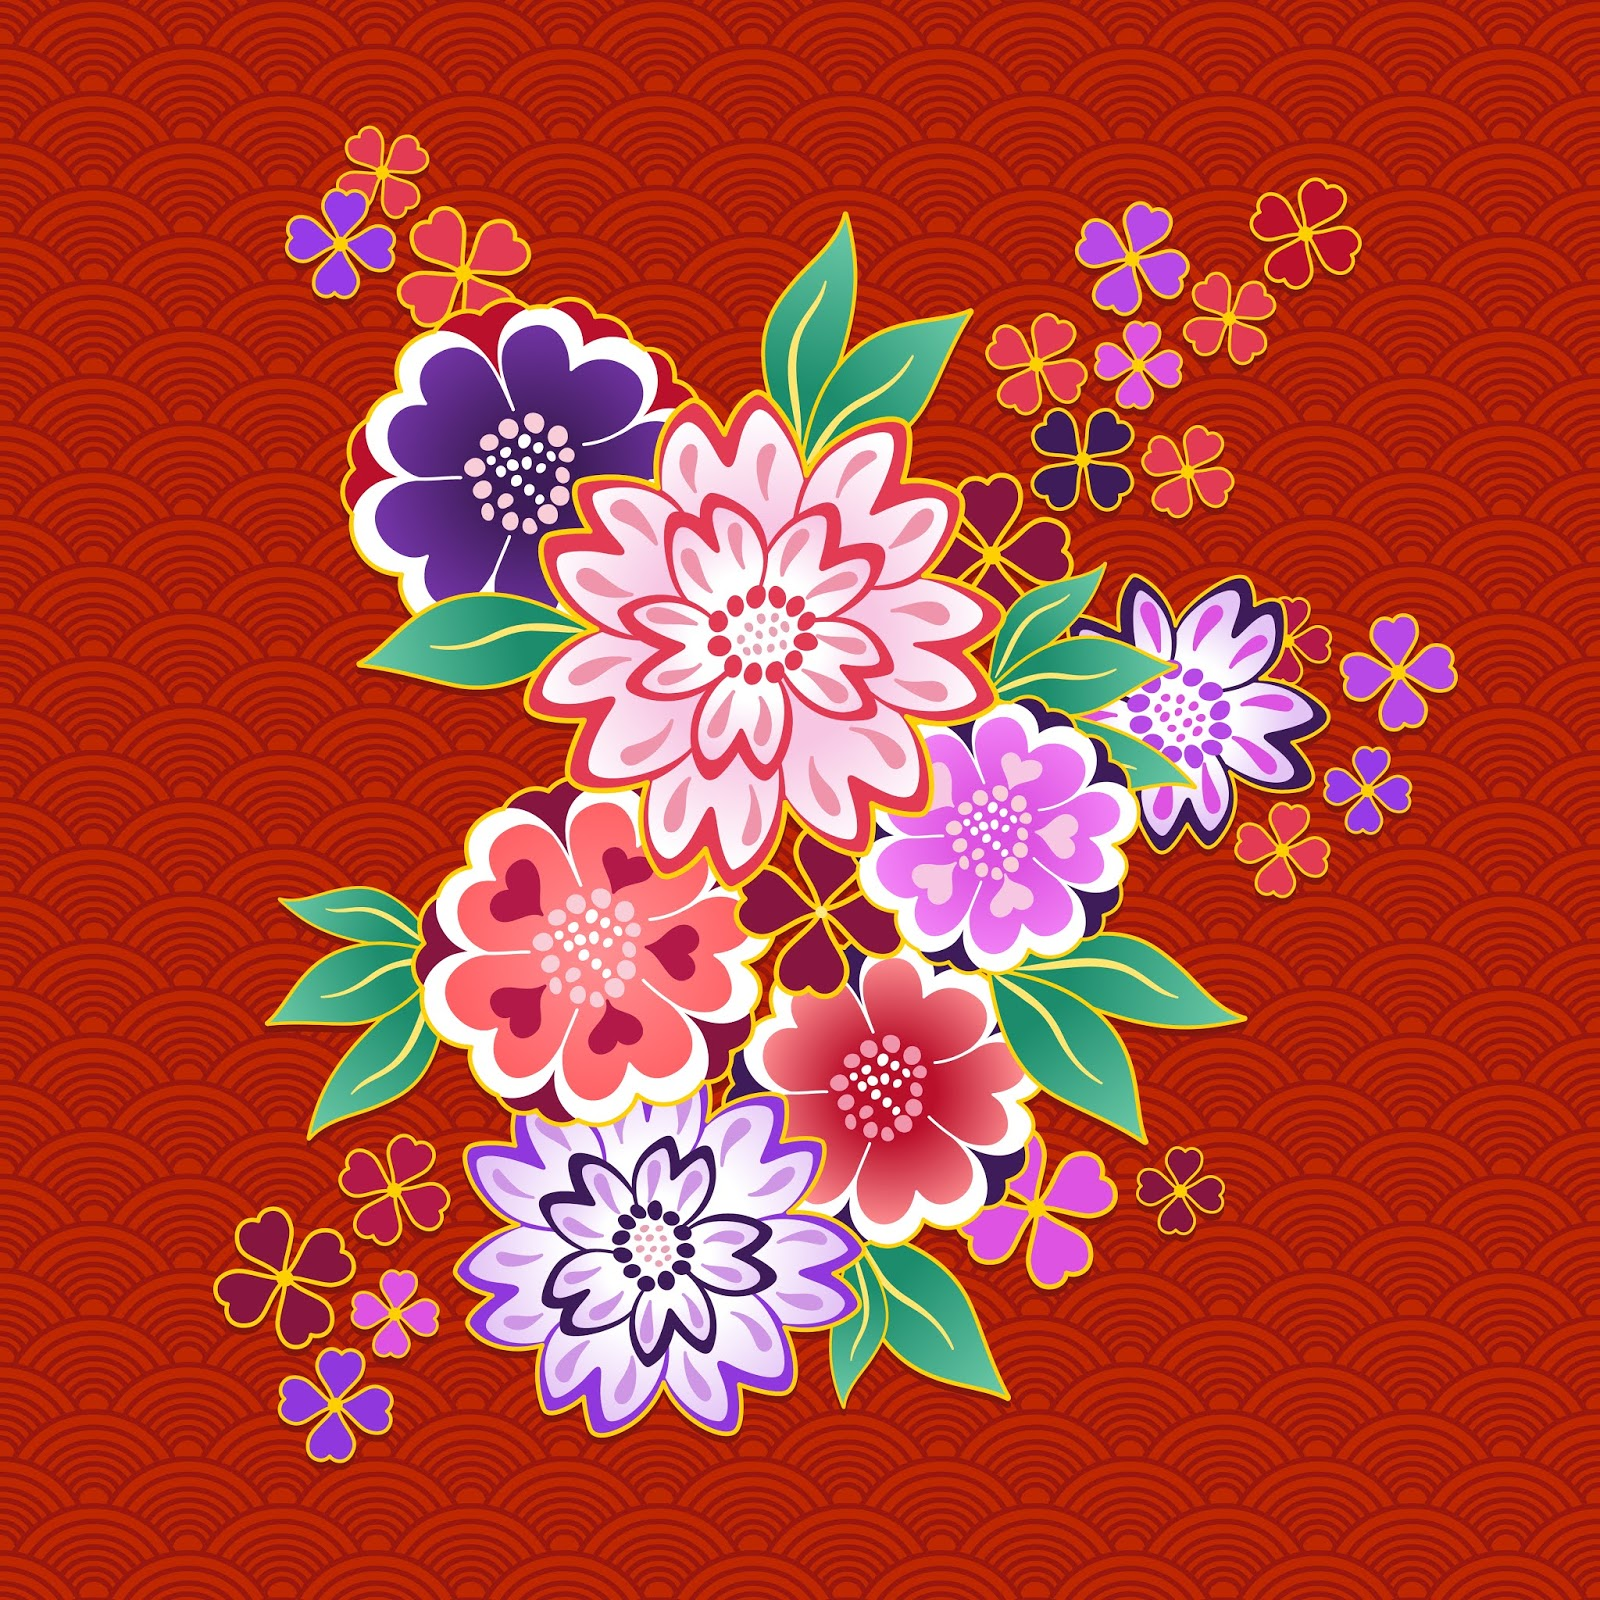 Decorative Kimono Floral Motif Red Background Free Download Vector CDR, AI, EPS and PNG Formats